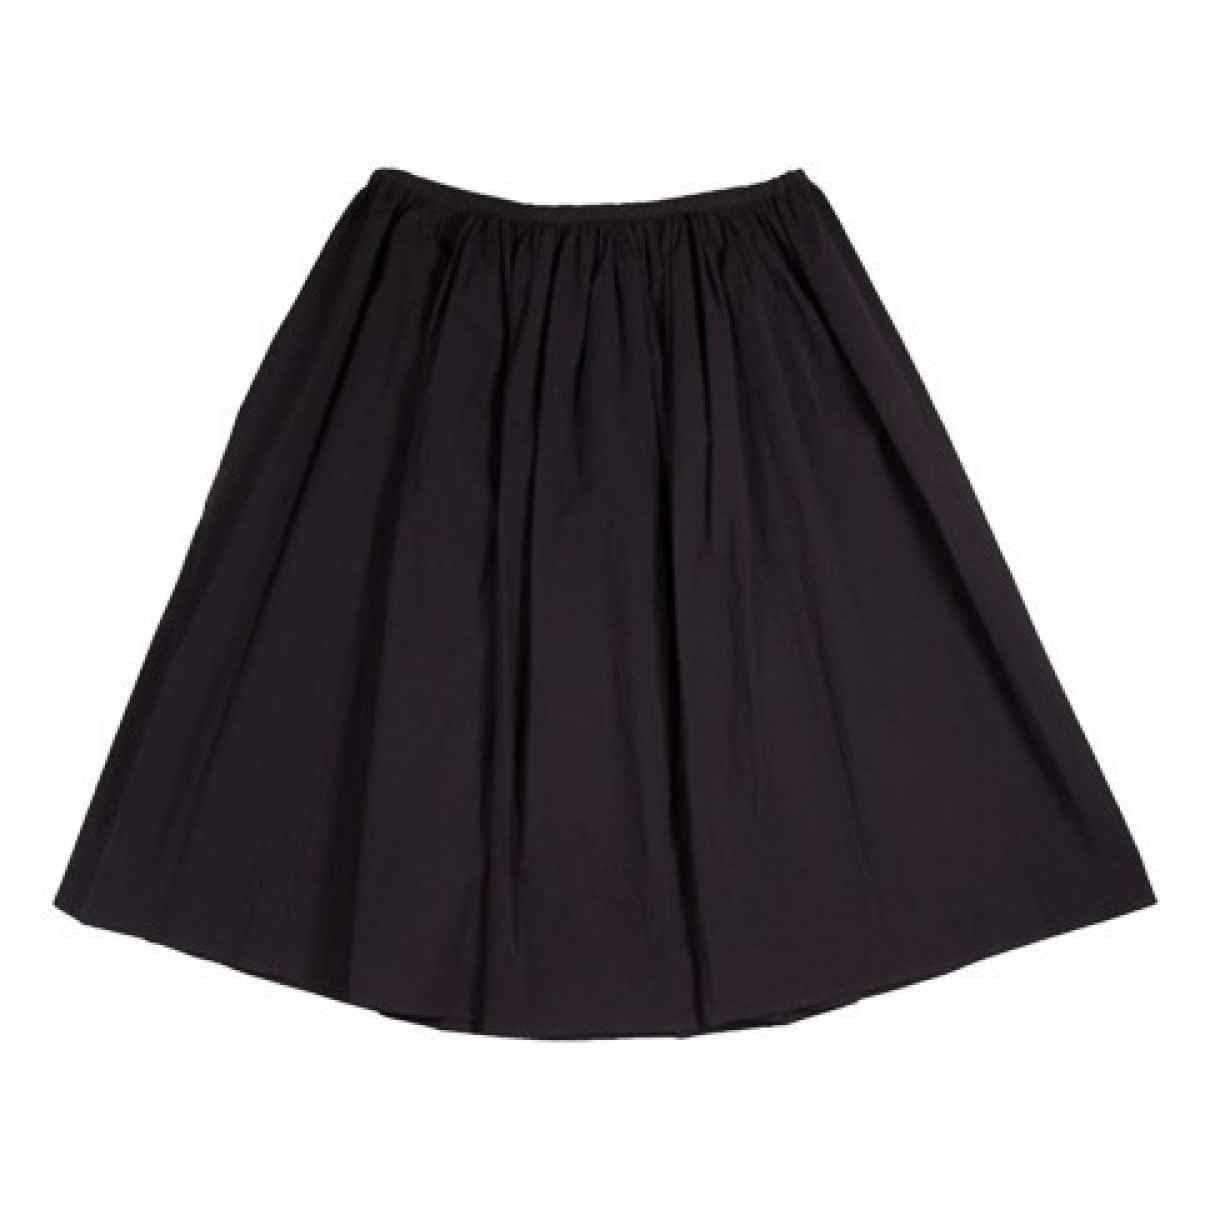 Non Signé / Unsigned \N Anthracite Cotton skirt for Women L International